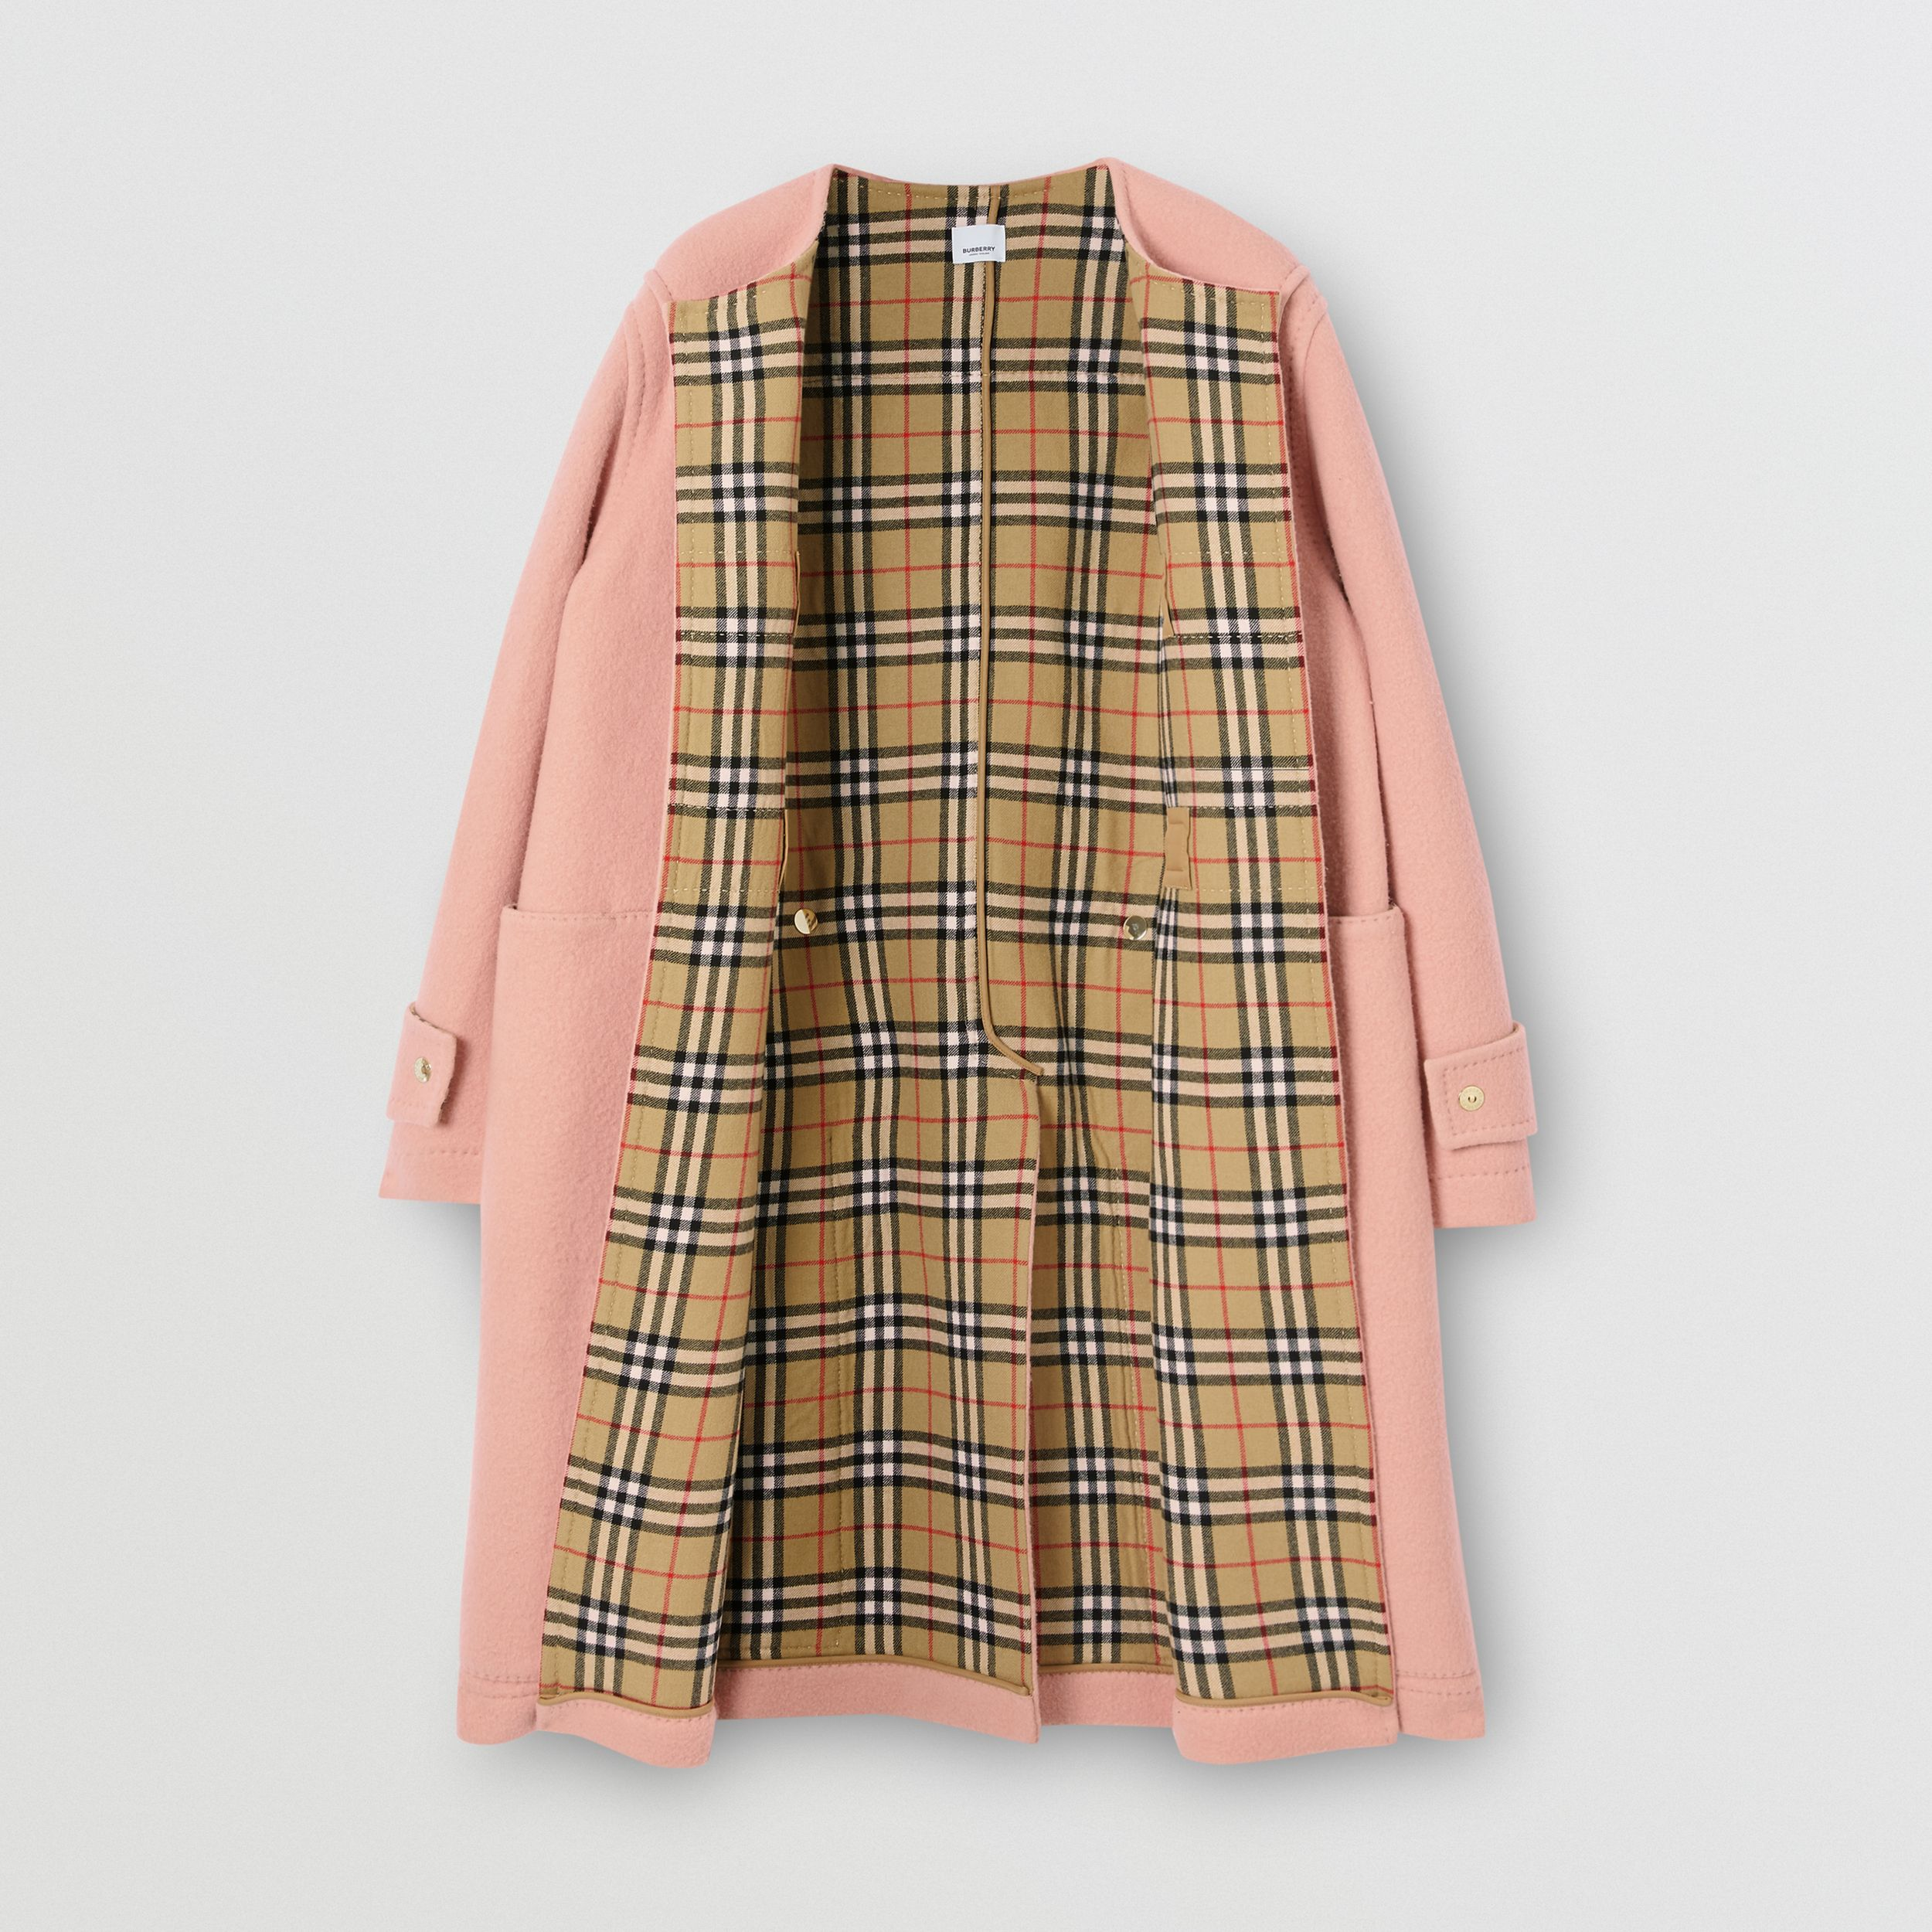 Vintage Check-lined Felted Wool Duffle Coat in Dusty Pink | Burberry United States - 4